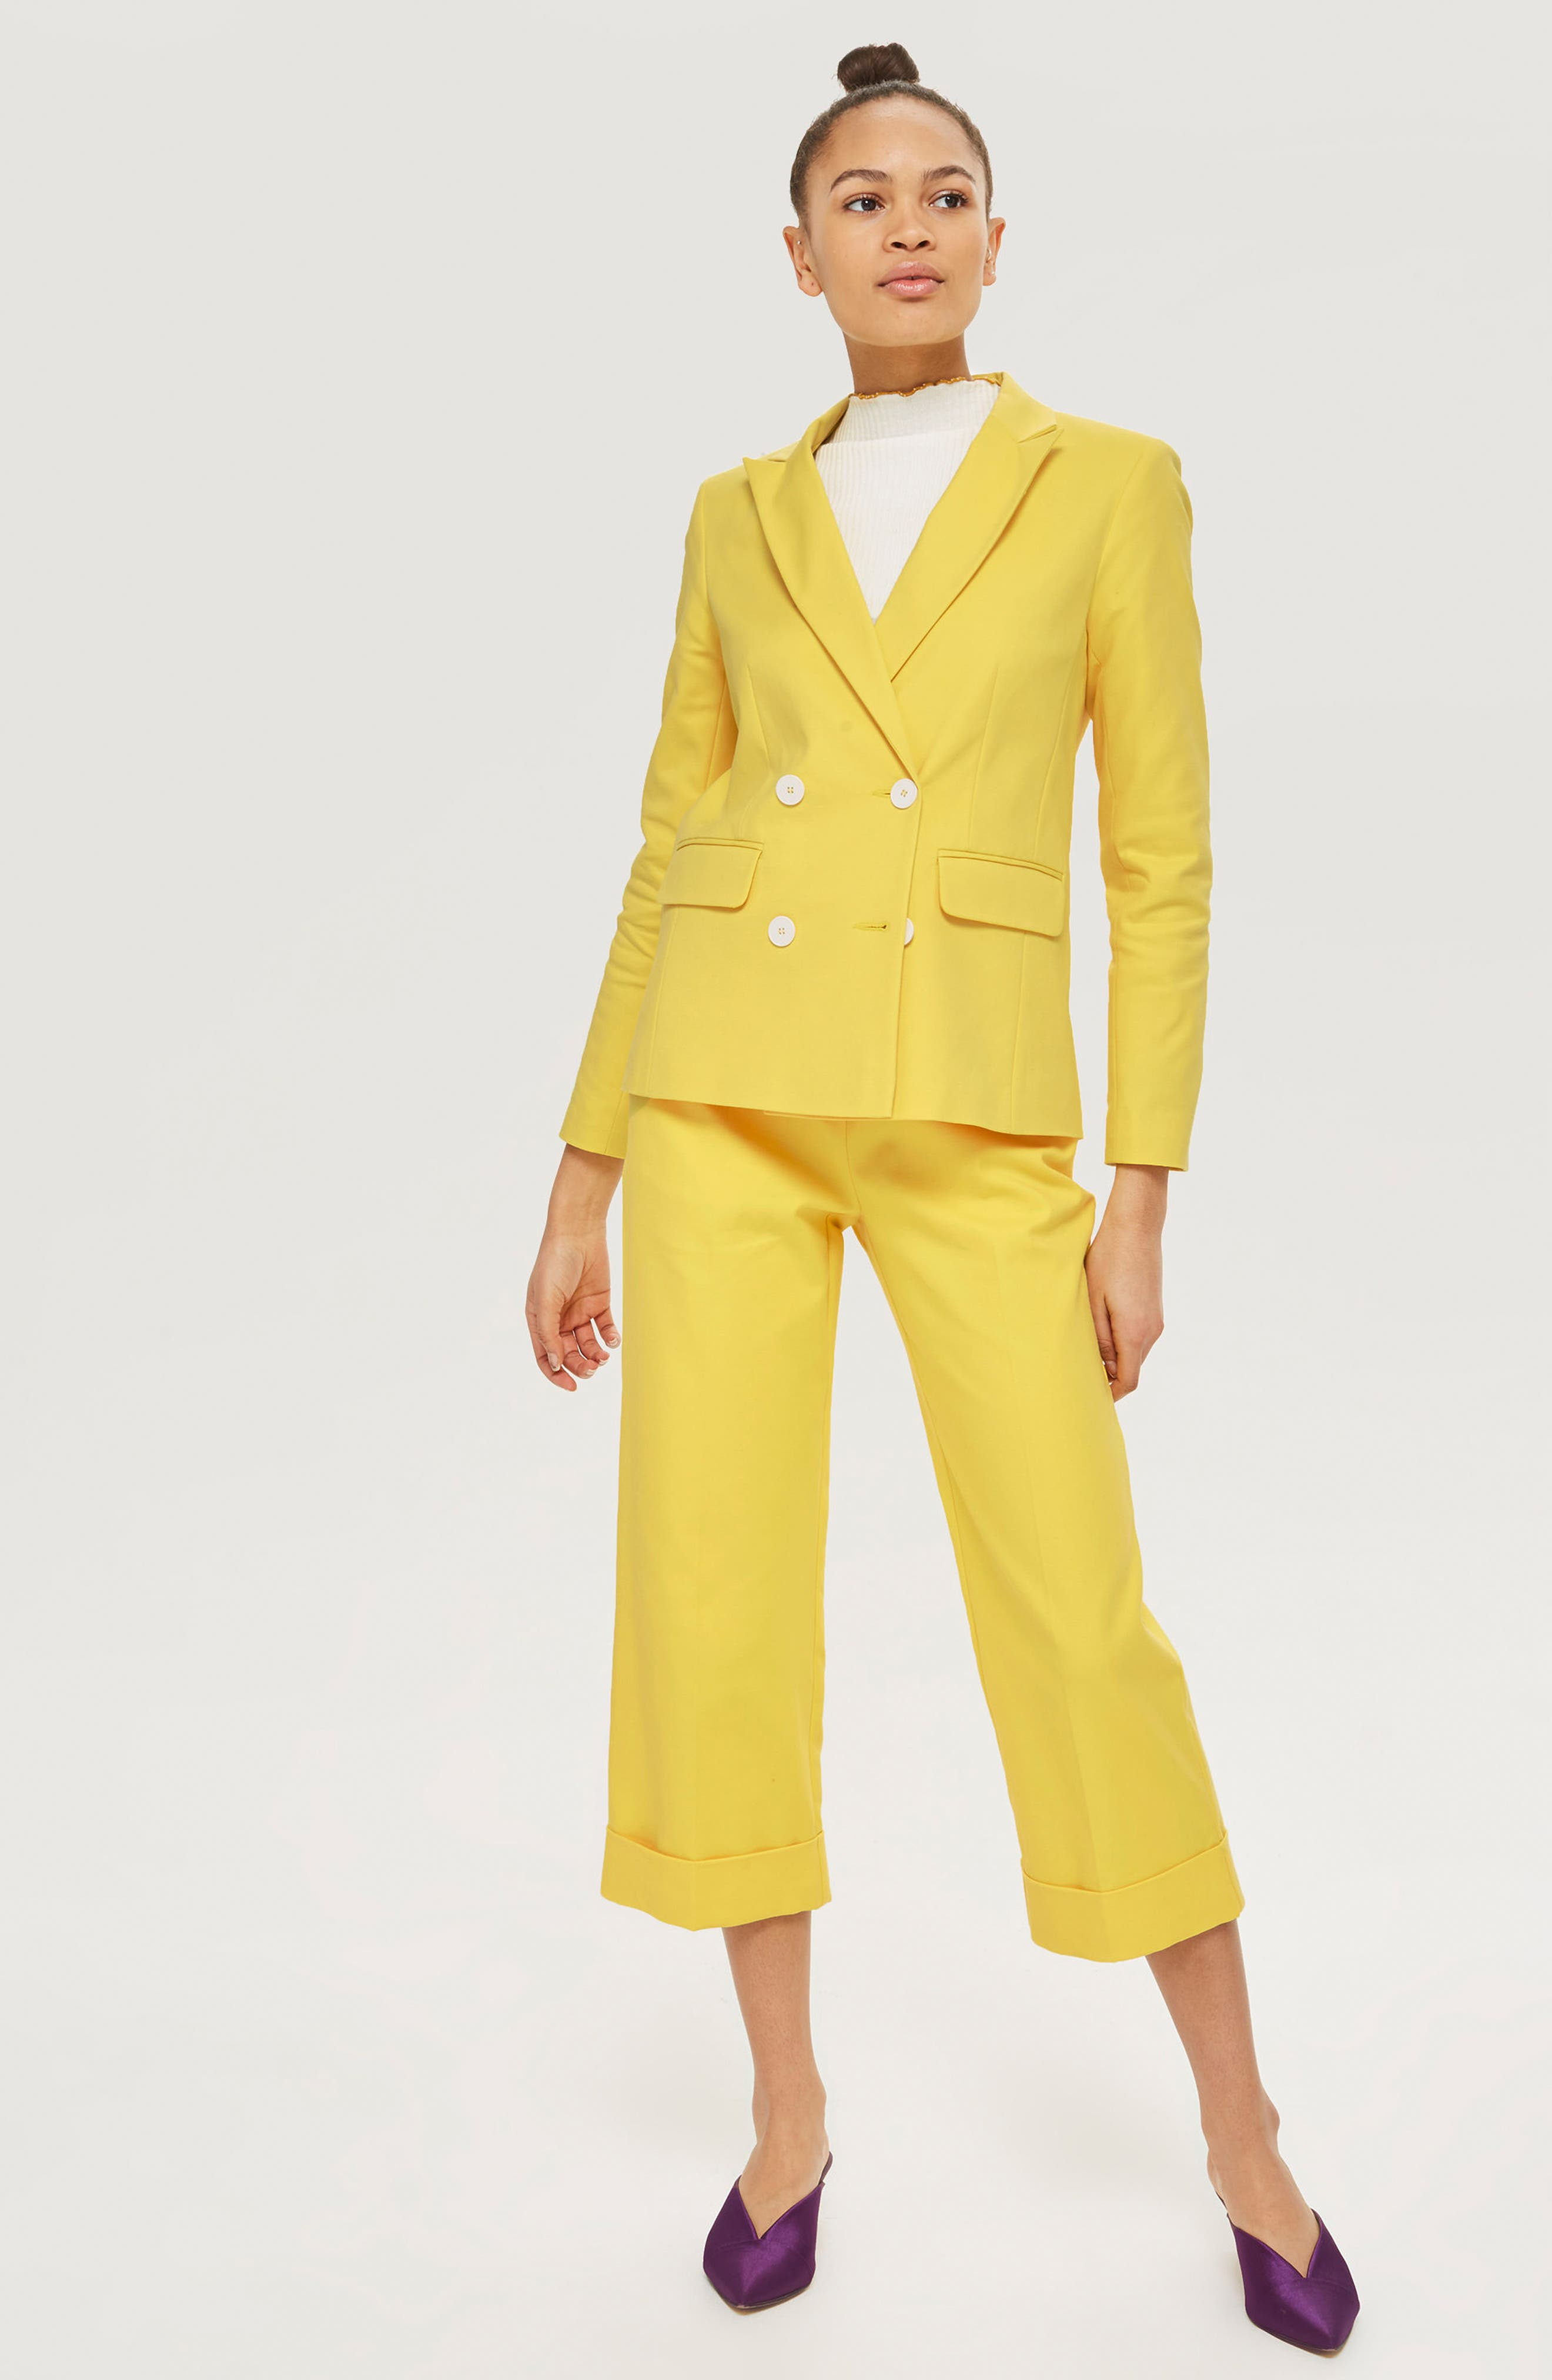 Milly Crop Suit Trousers,                             Alternate thumbnail 4, color,                             700